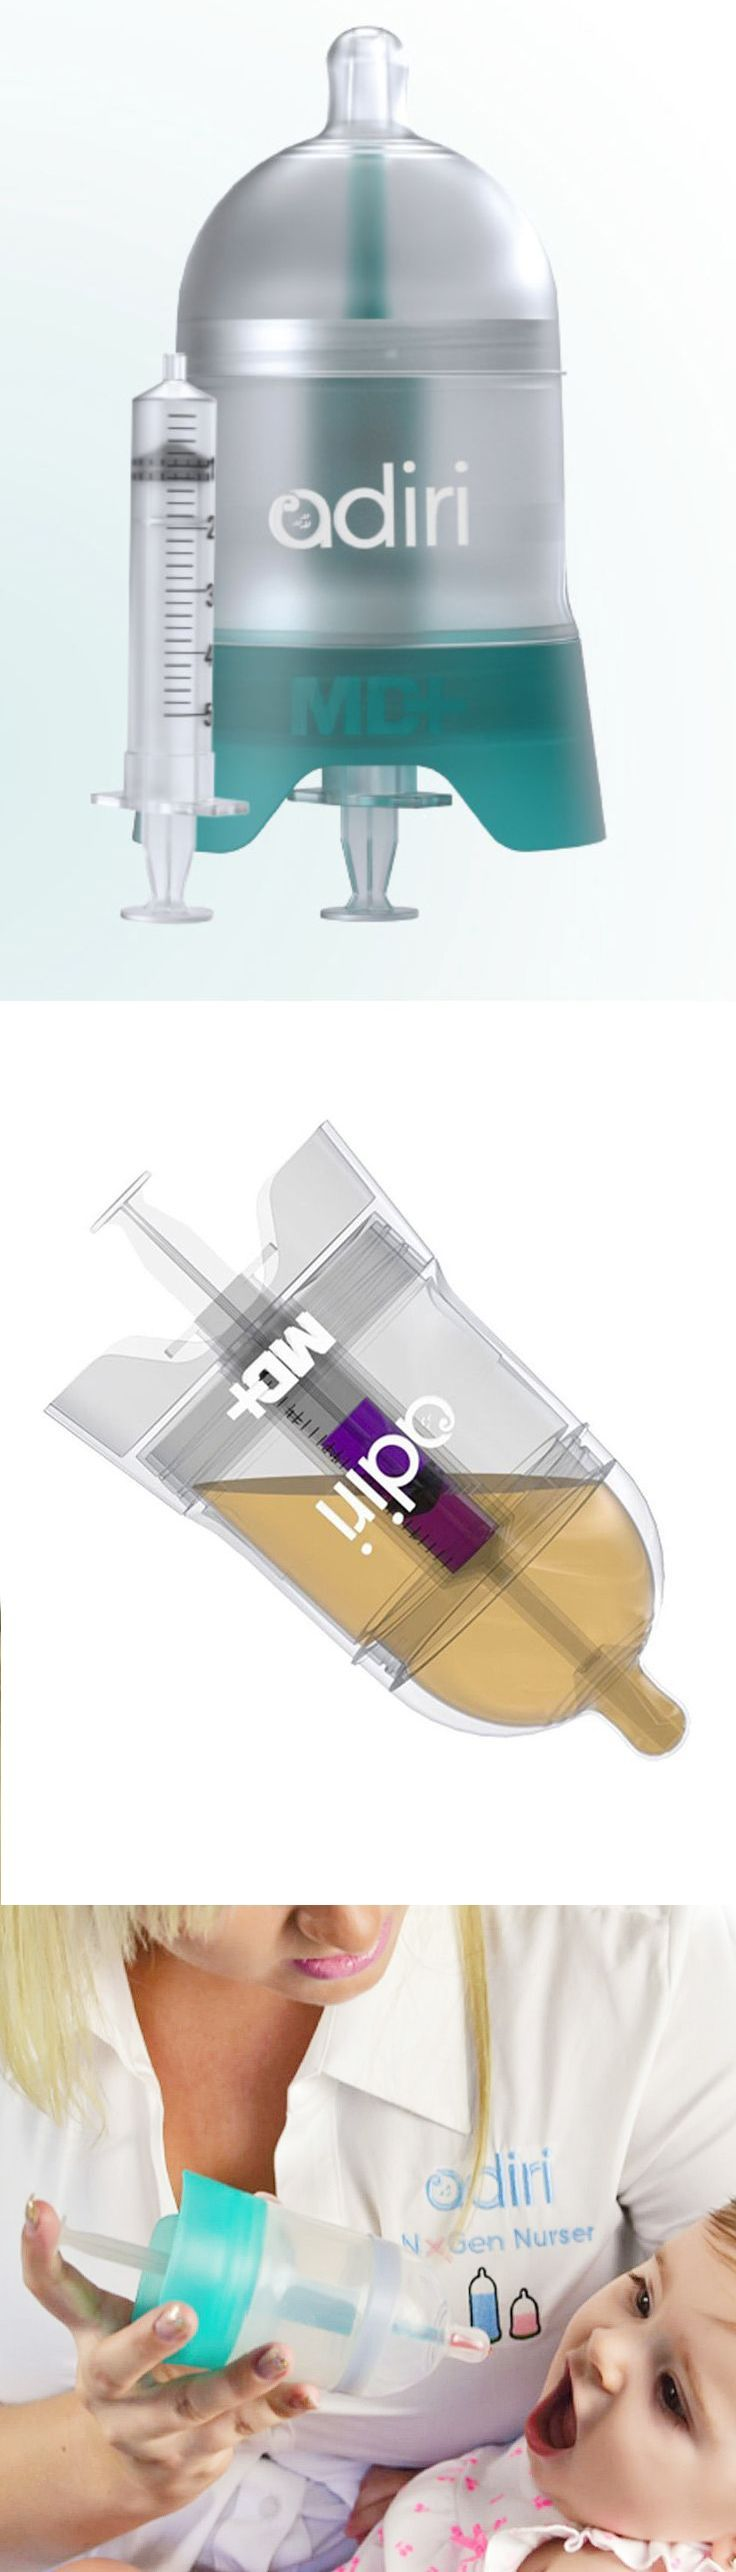 MD+ 5.5-Oz. Medicine Delivery Nursing Bottle. Easily deliver medications through this device disguised as a bottle.